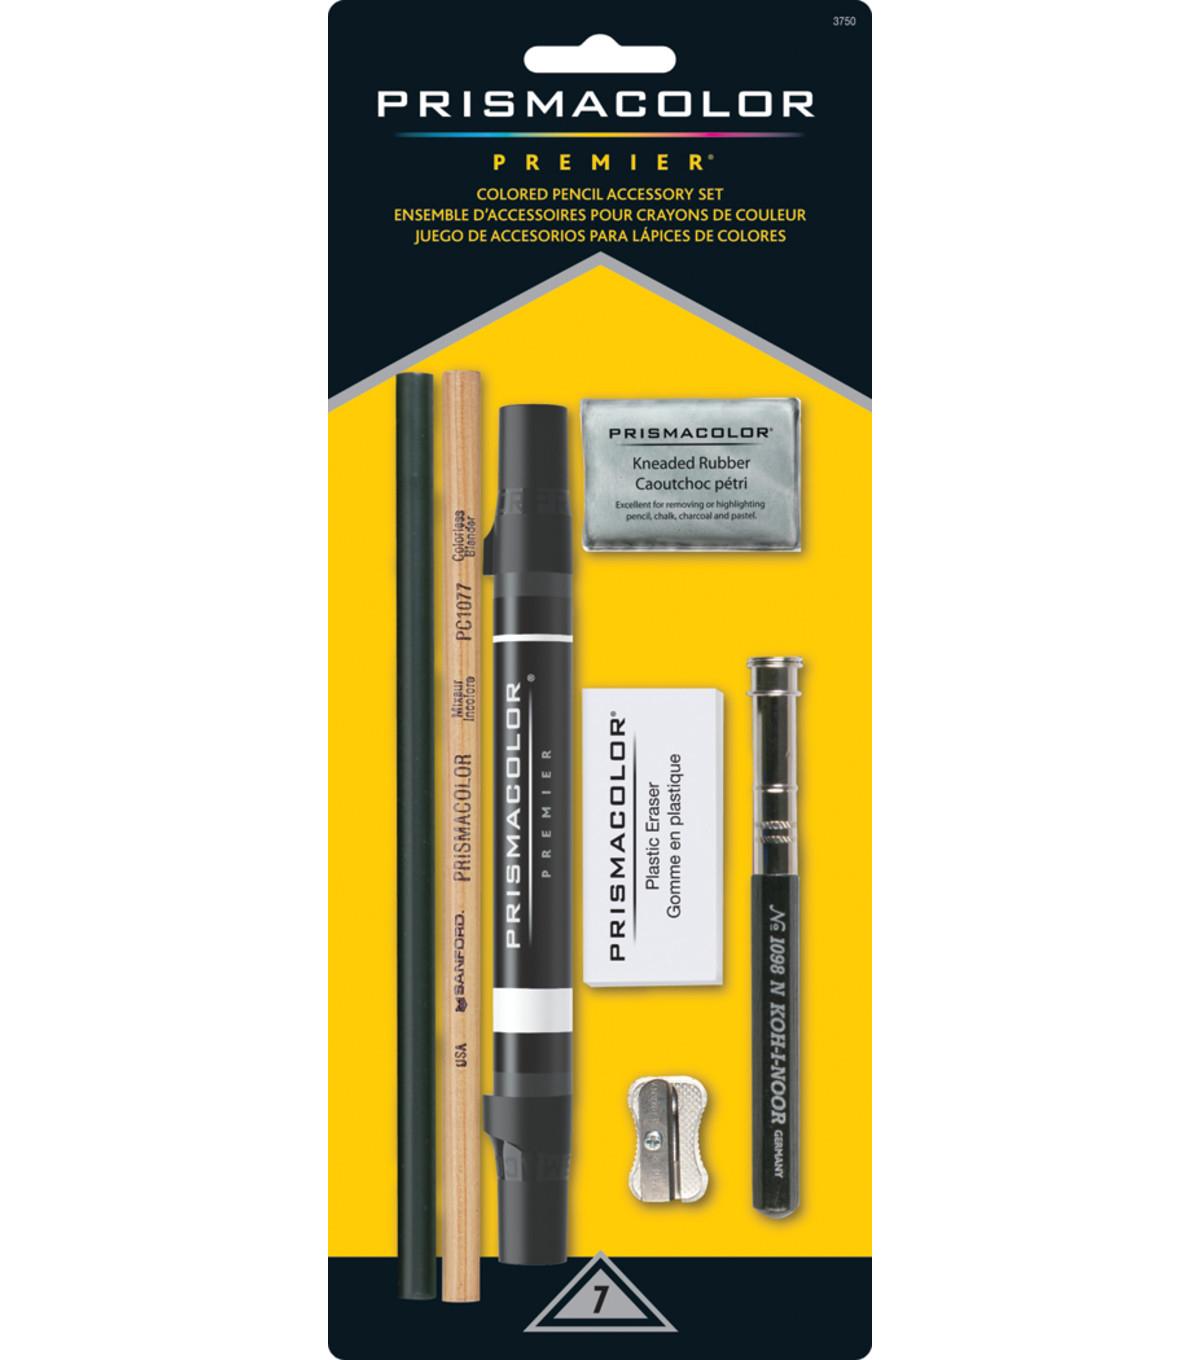 Prismacolor Premier Colored Pencil Accessory Set 7pcs